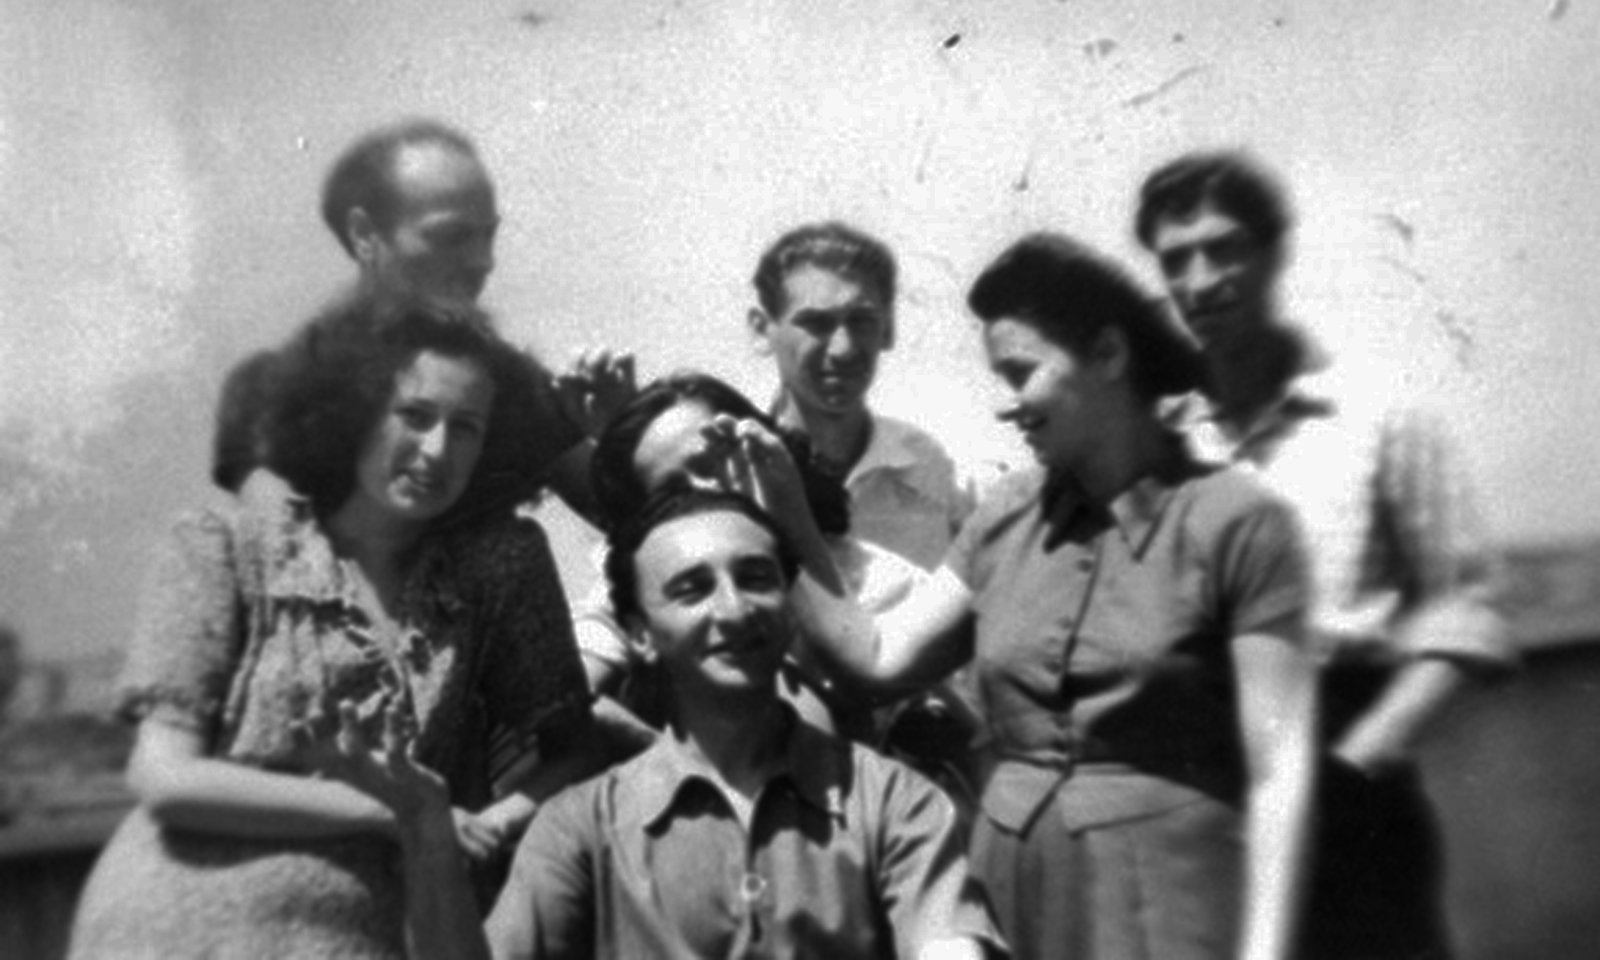 The Bucharest Surrealist Group [From left to right, in the first row: Paul Pặun; second row: Valentina Sesto-Pals, Renny Pặun, and Lyggia Naum; third row: Gherasim Luca, Dolfi Trost, and Gellu Naum] 1946-1947 , Unknown photographer, Gellu Naum Foundation , Copyright Not Evaluated